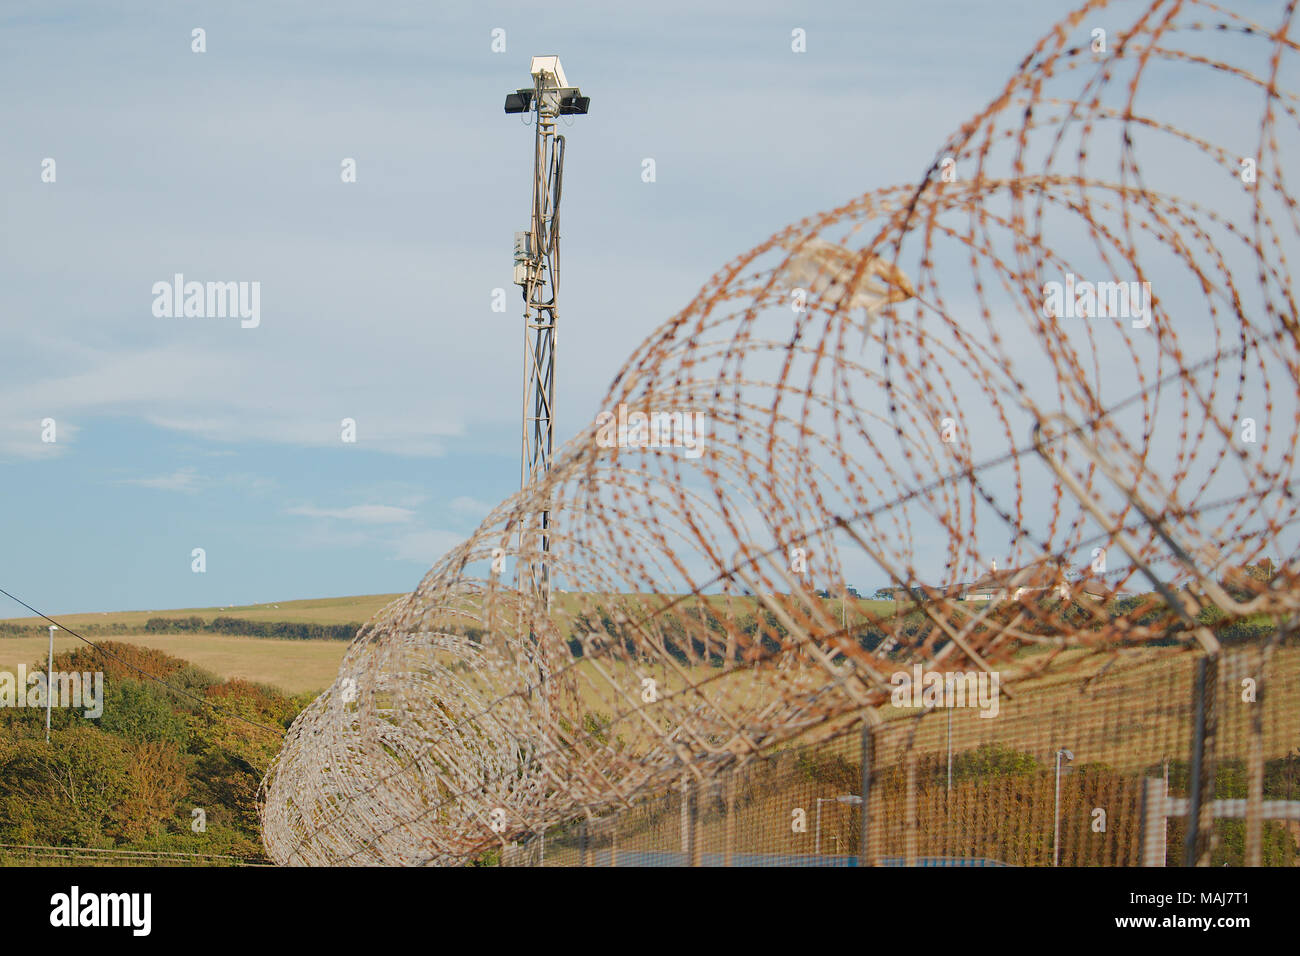 Cctv Camera Barbed Wire Fence Stock Photos & Cctv Camera Barbed Wire ...